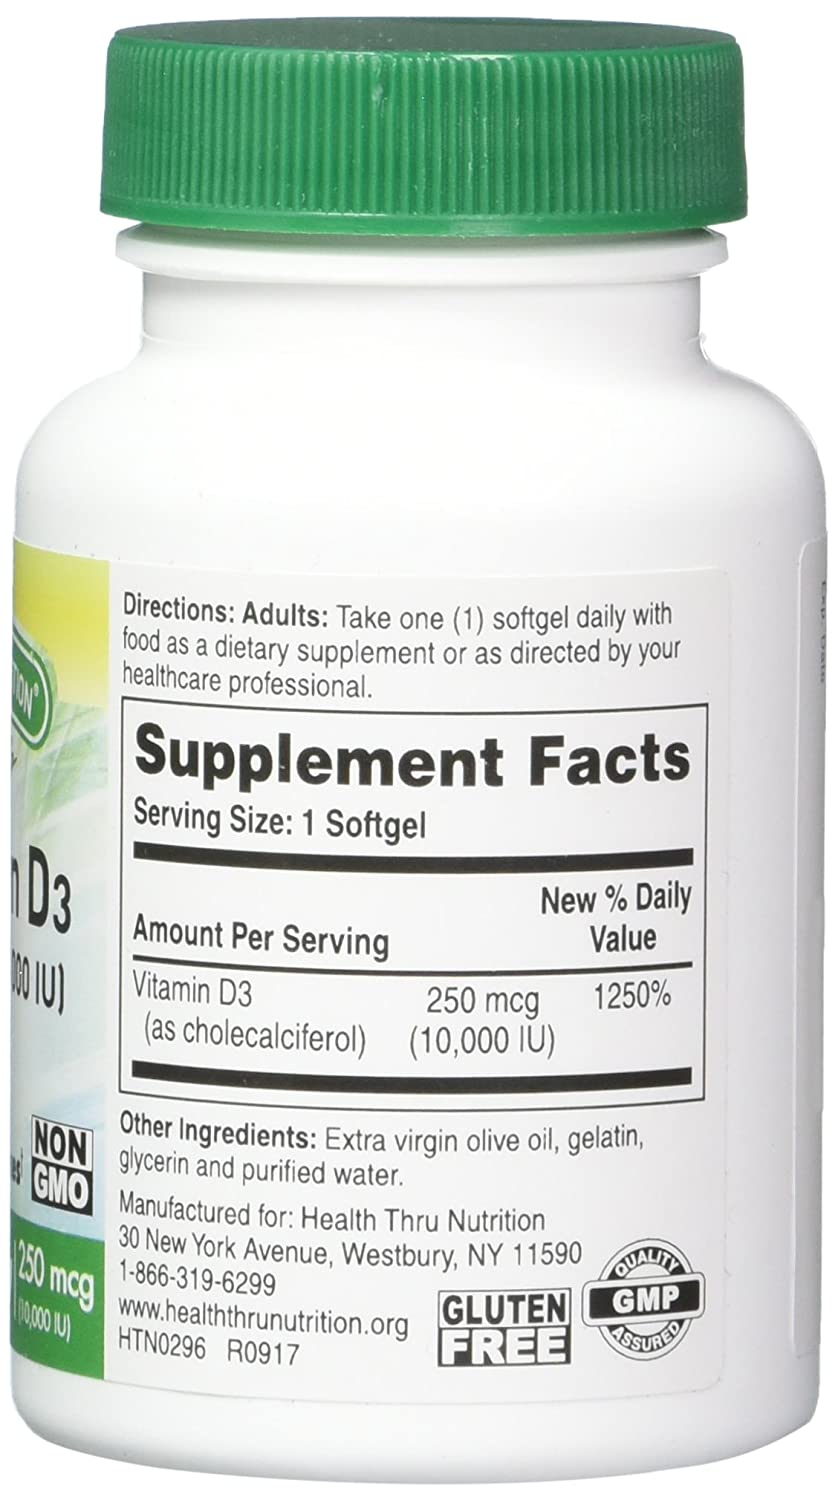 Amazon.com: Health Thru Nutrition Vitamin D3 10,000 Iu Non-GMO Mini  Softgels, 360 Count: Health & Personal Care